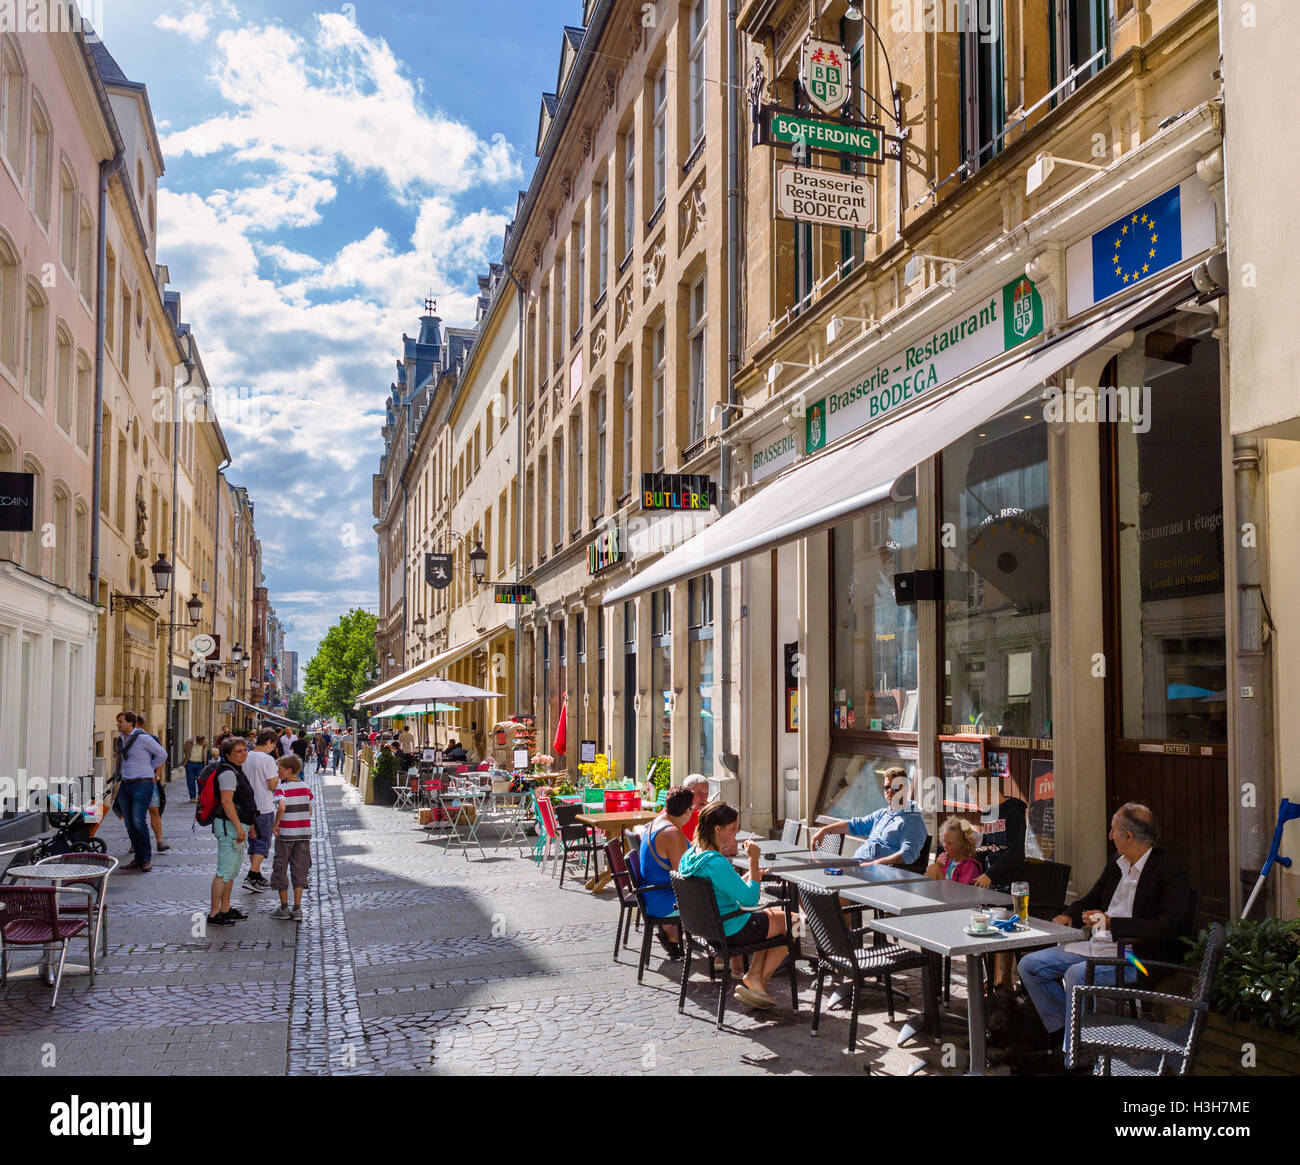 Cafes on rue du cure in the old town la vieille ville cafes on rue du cure in the old town la vieille ville luxembourg city luxembourg thecheapjerseys Gallery